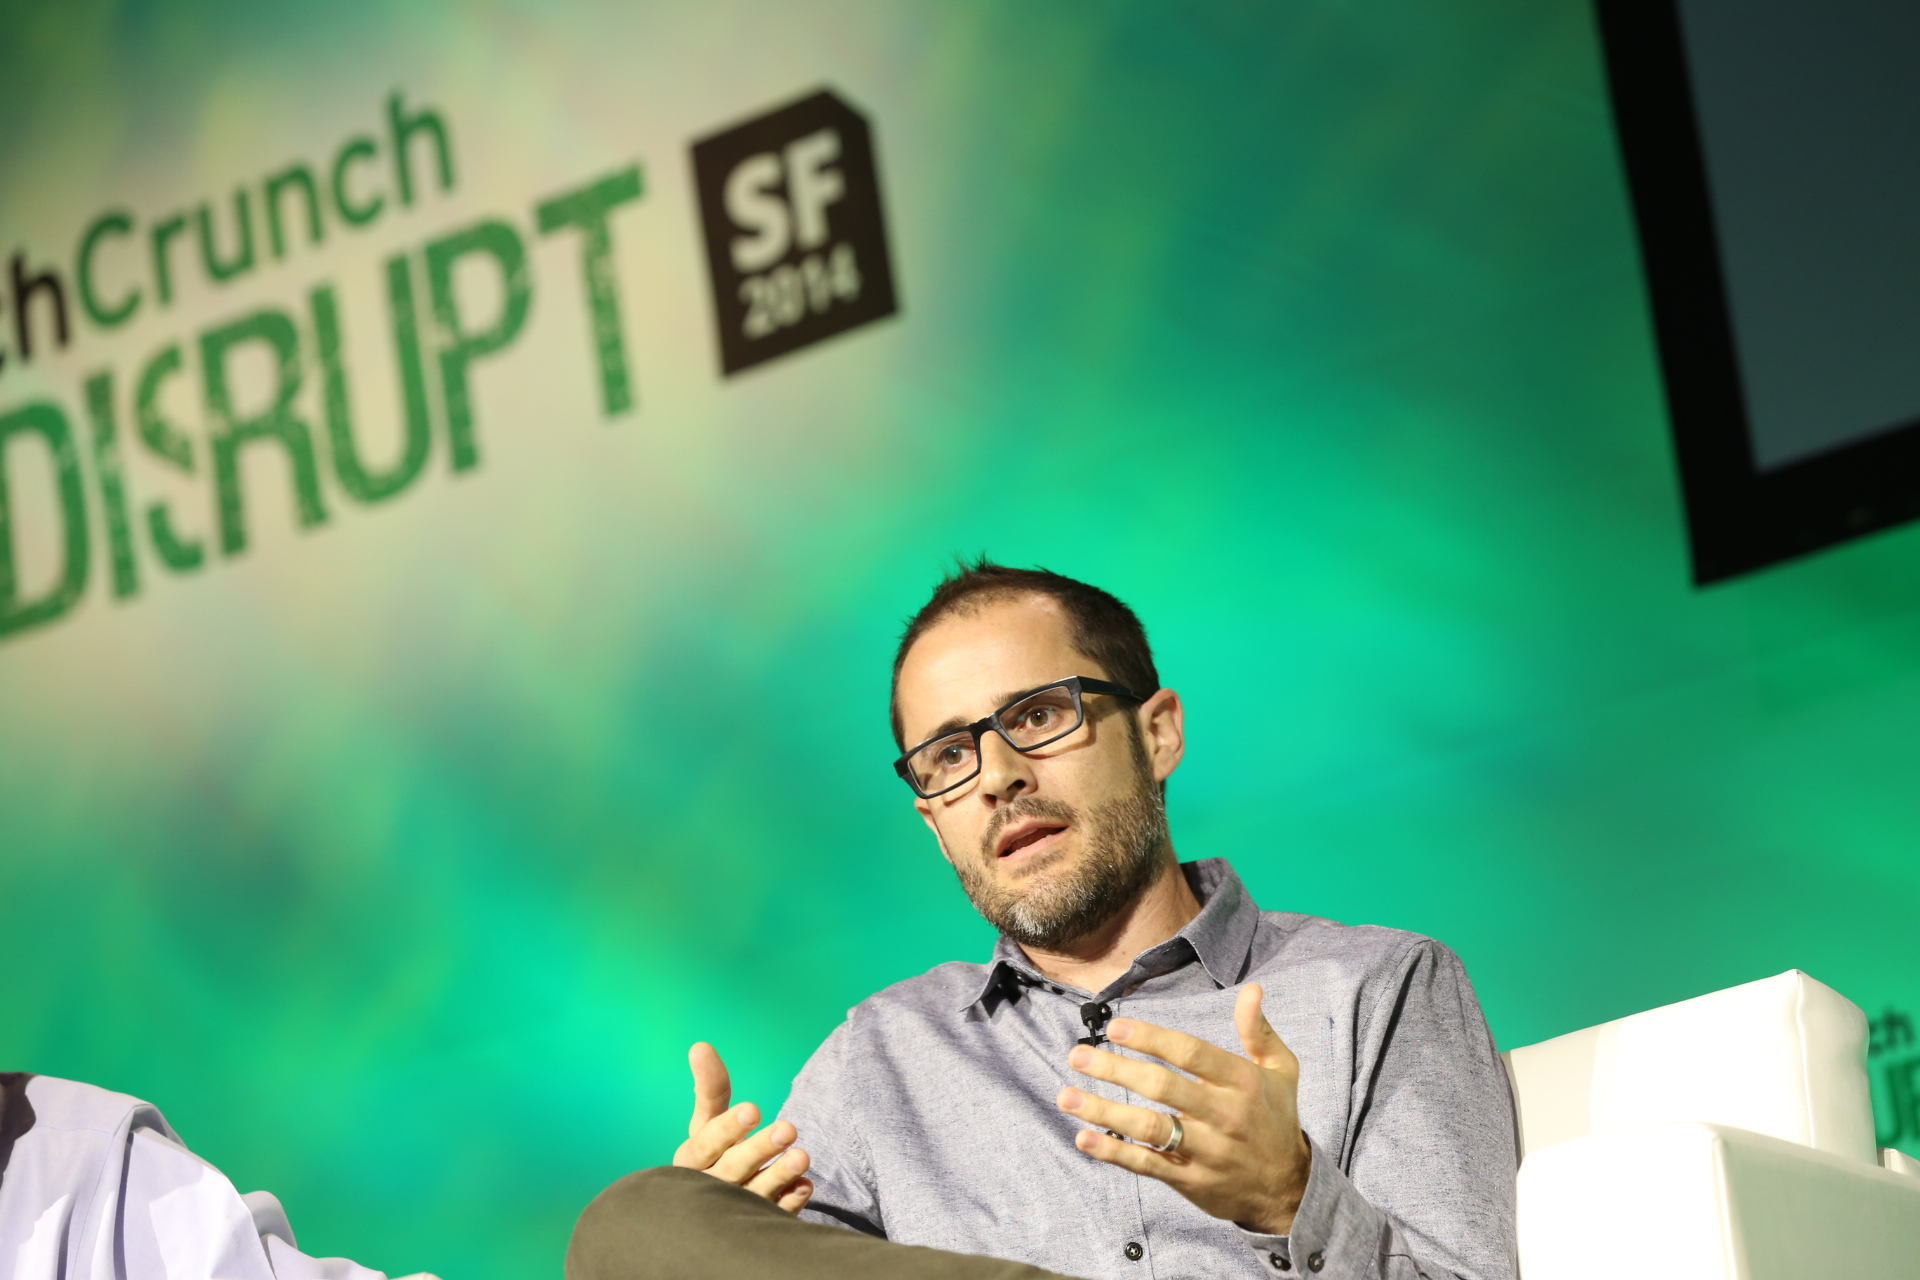 Medium lowers its paywall for Twitter users | TechCrunch